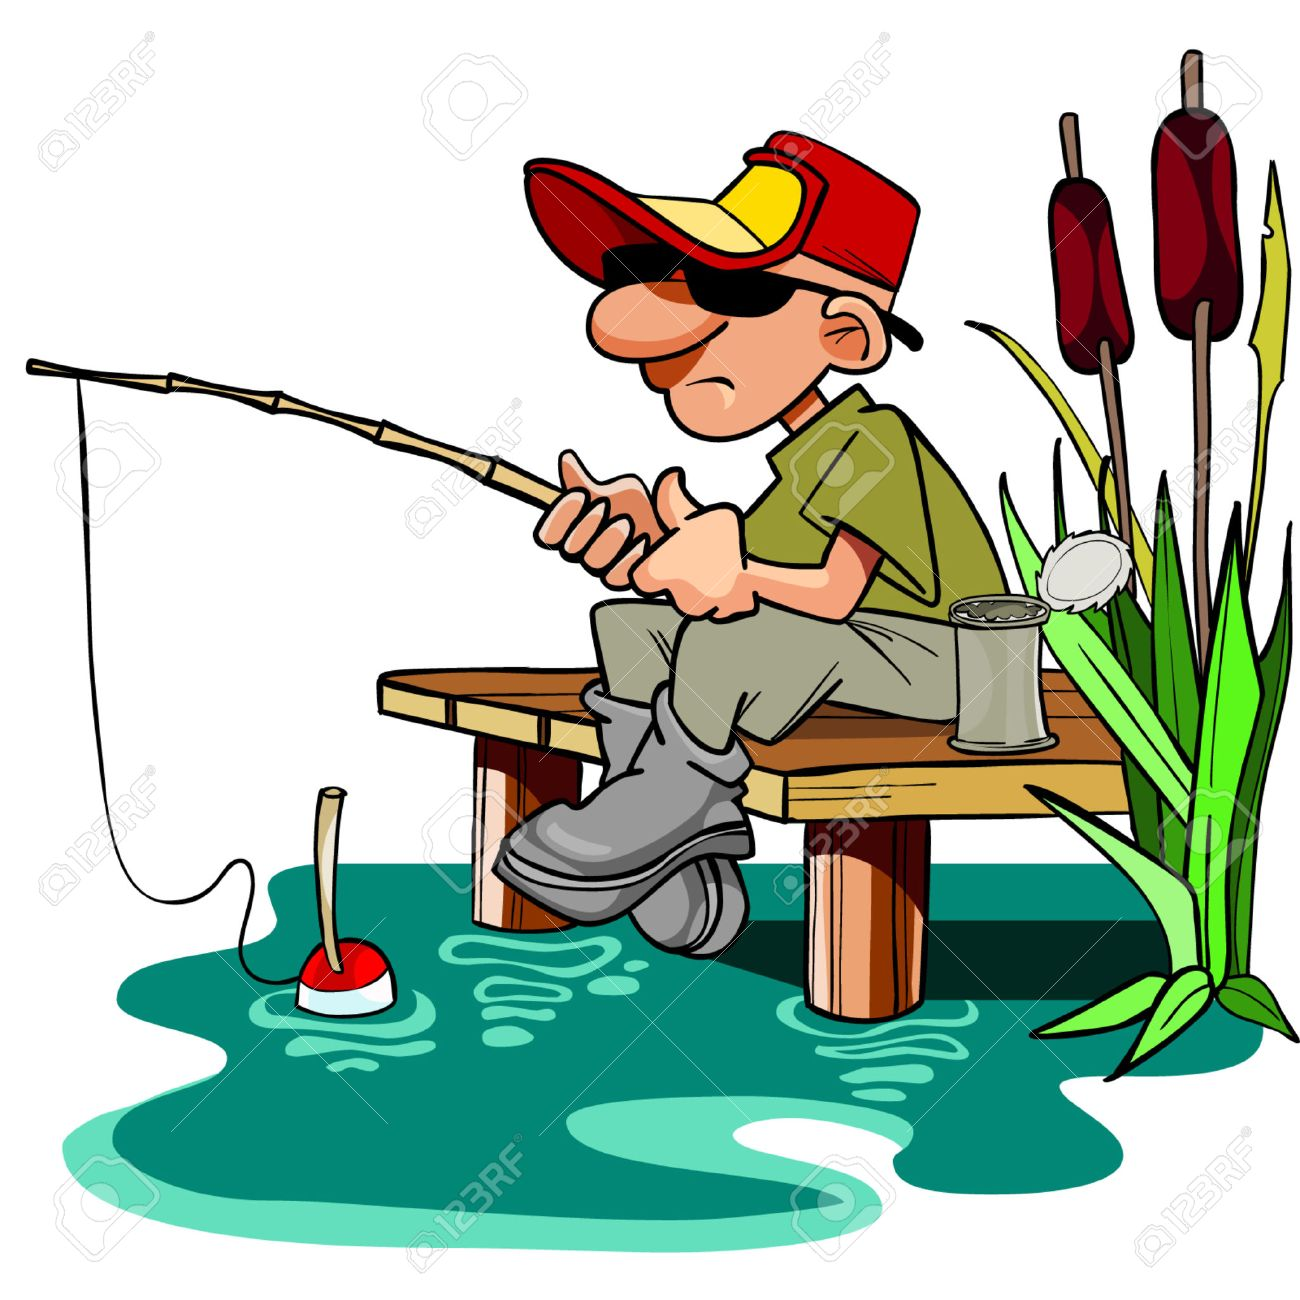 6 193 man fishing stock illustrations cliparts and royalty free man rh 123rf com Funny Fishing Clip Art gone fishing clipart free